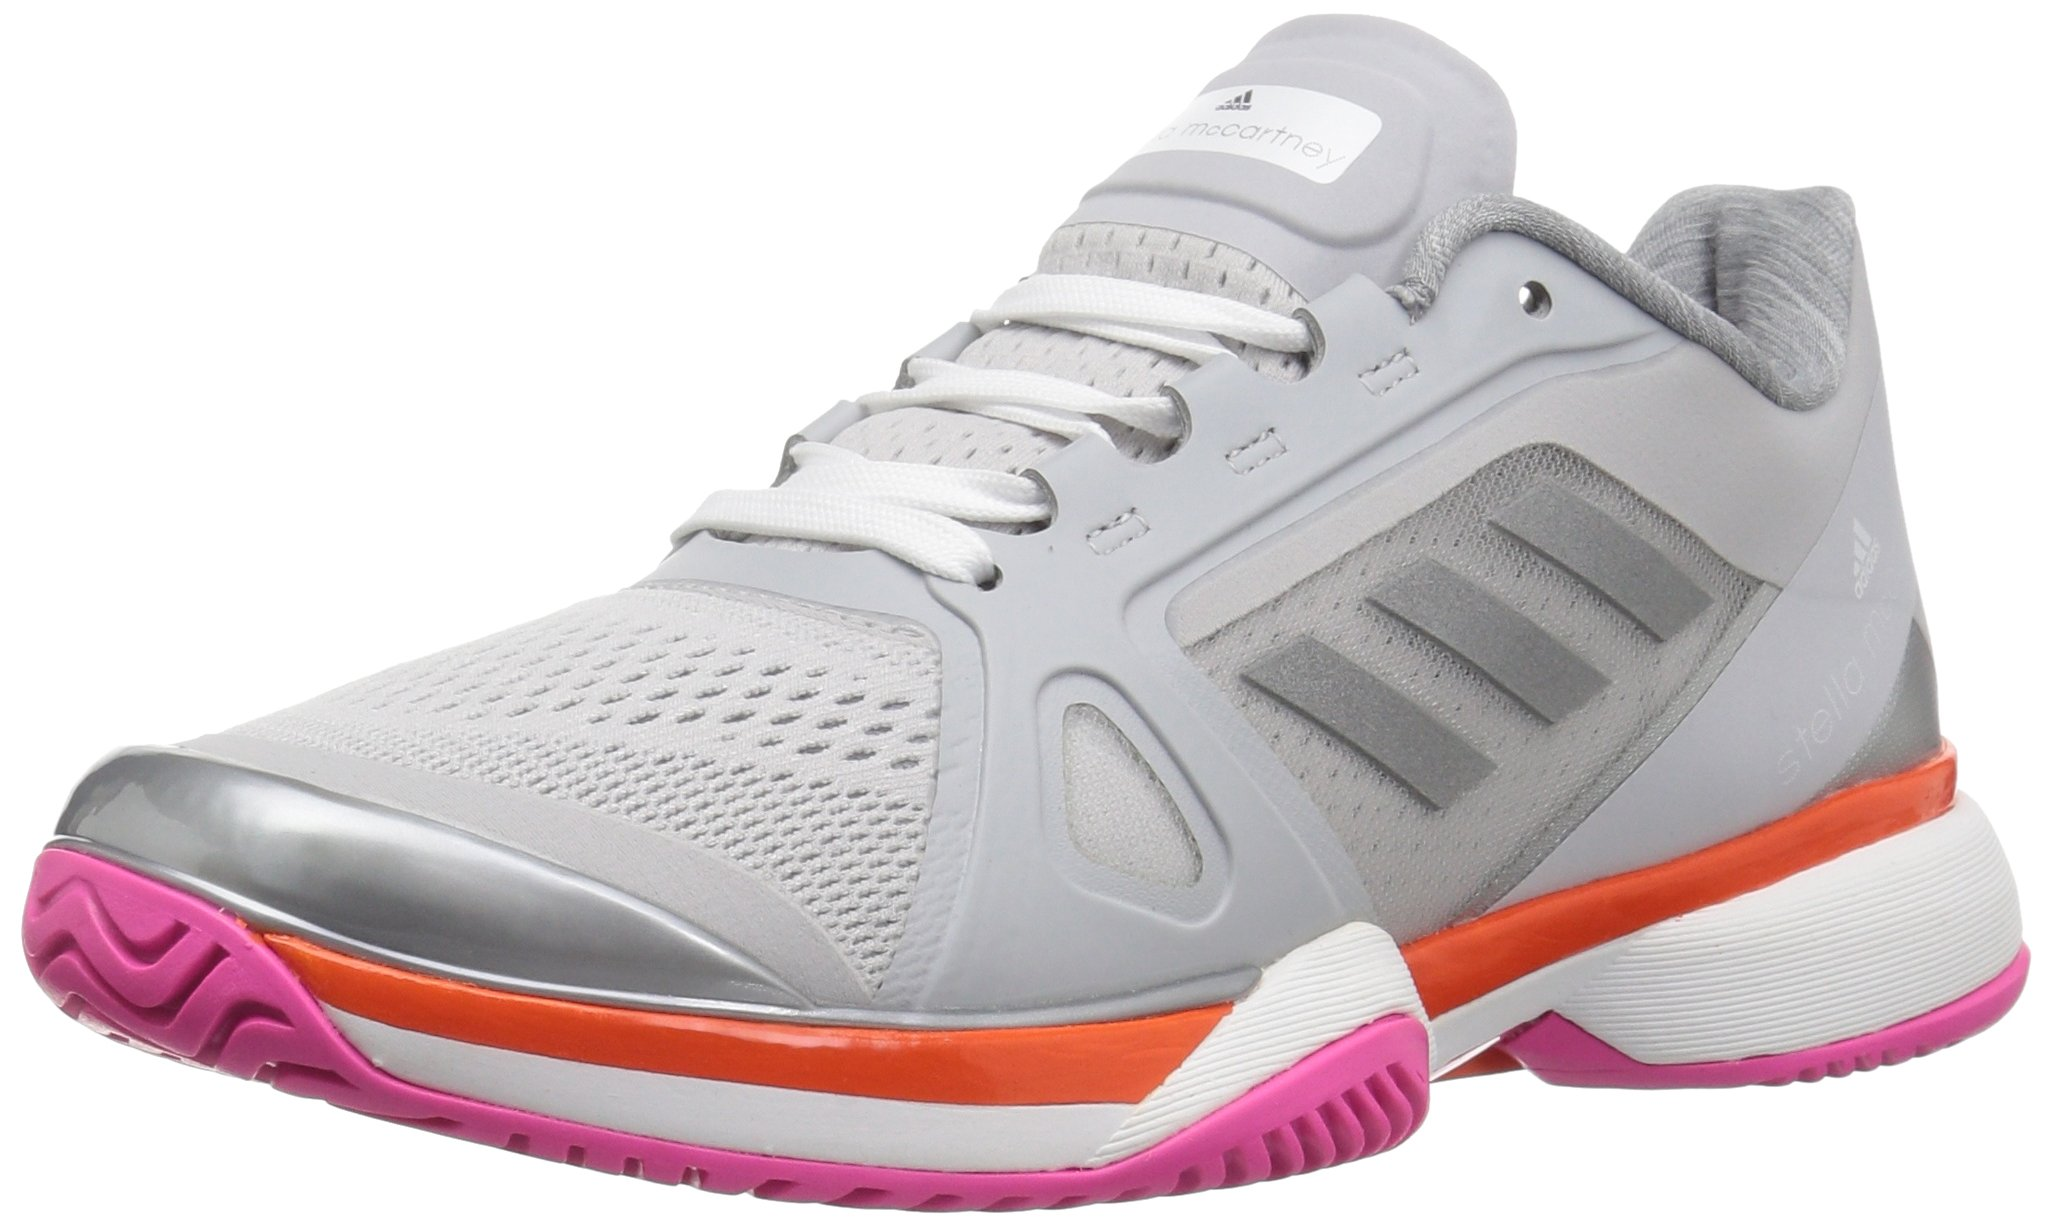 adidas Women's Shoes | Asmc Barricade 2017 Tennis, Light Solid Grey/White/Radiant Orange, (7 M US) by adidas